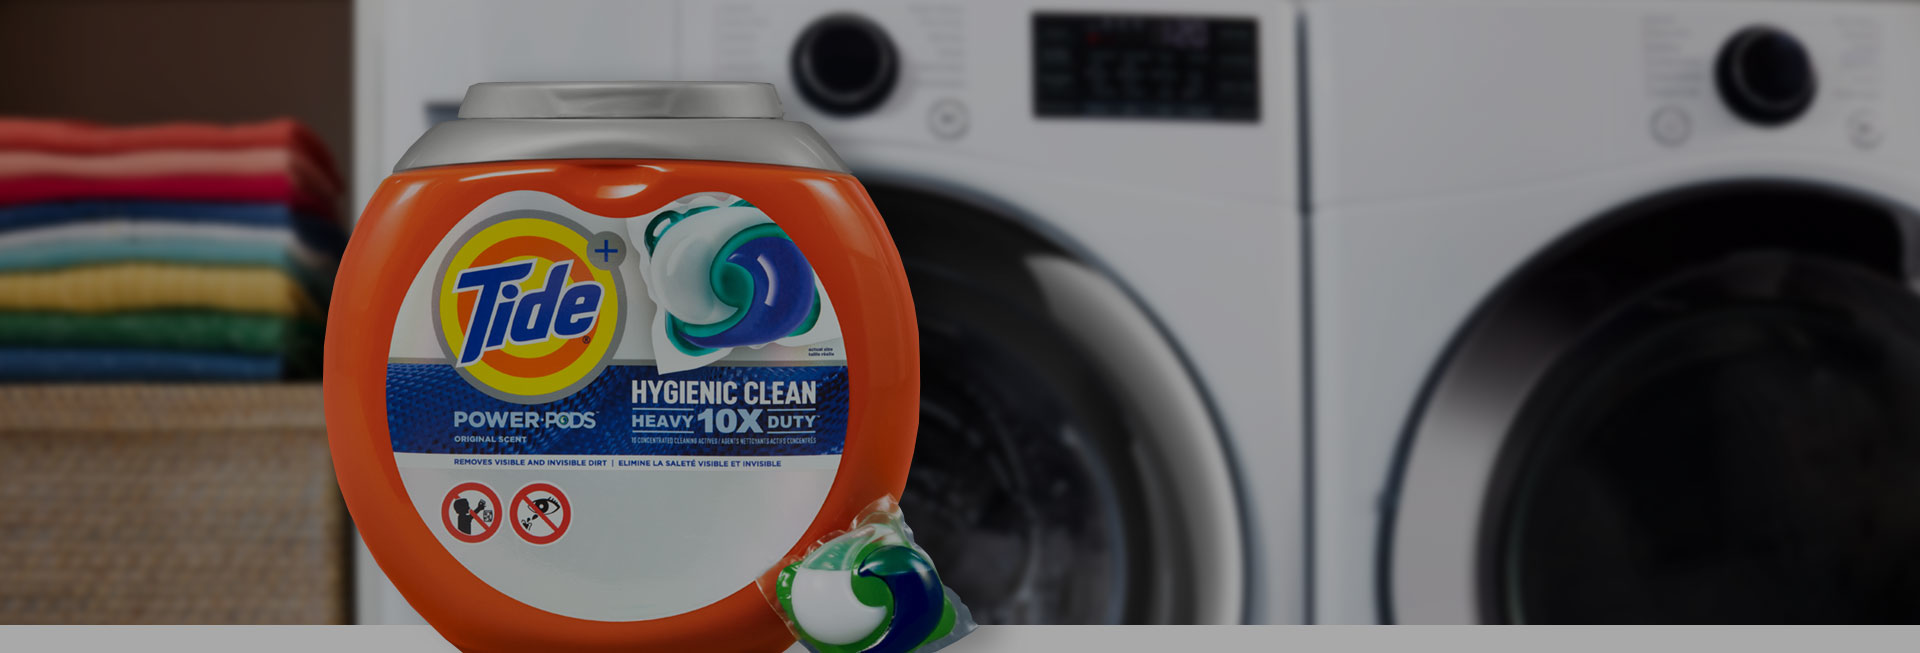 Tide Hygienic Clean Heavy Duty 10x Power PODS in fron of a washer